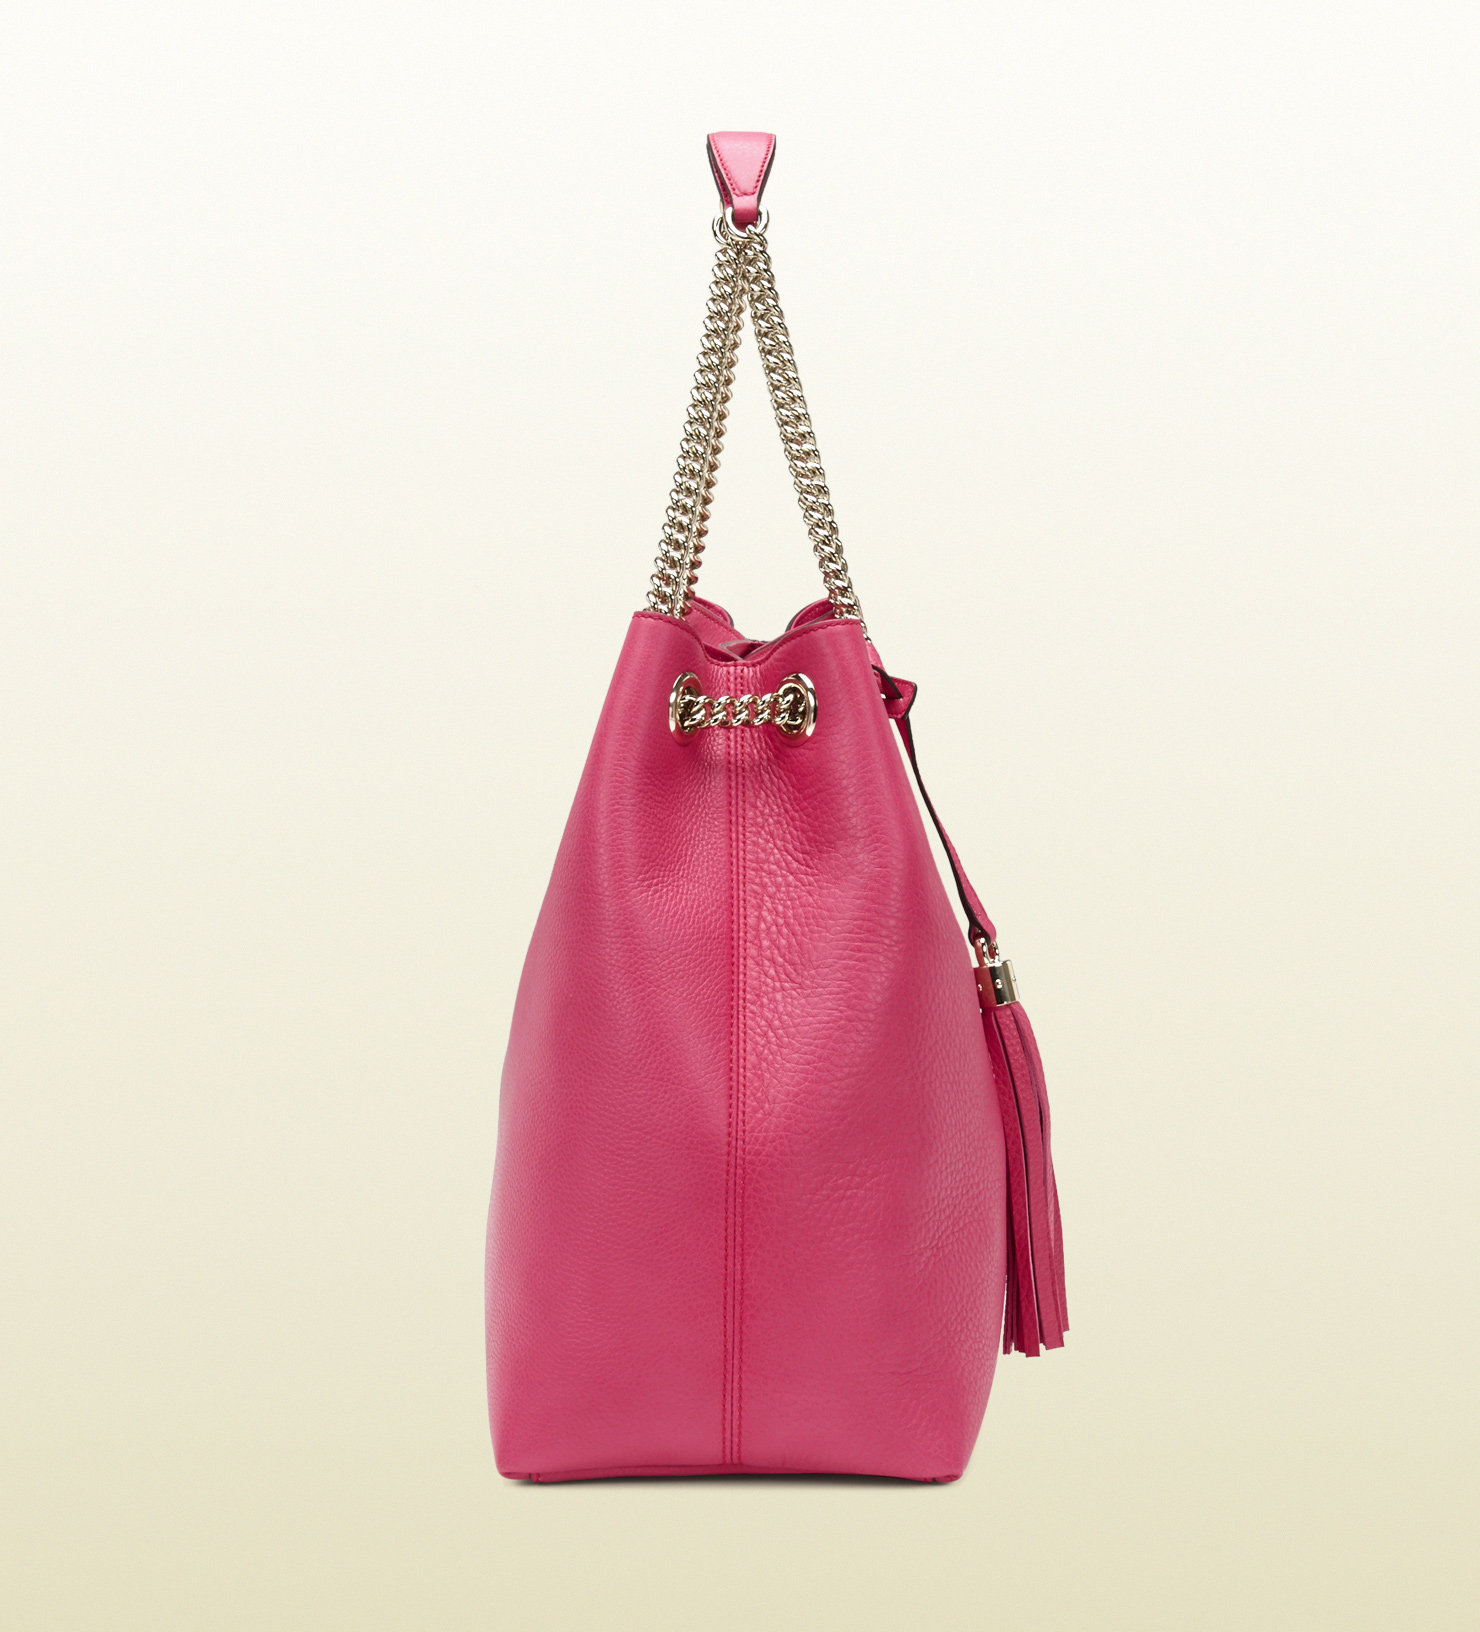 Lyst Gucci Soho Shocking Pink Leather Shoulder Bag In Pink